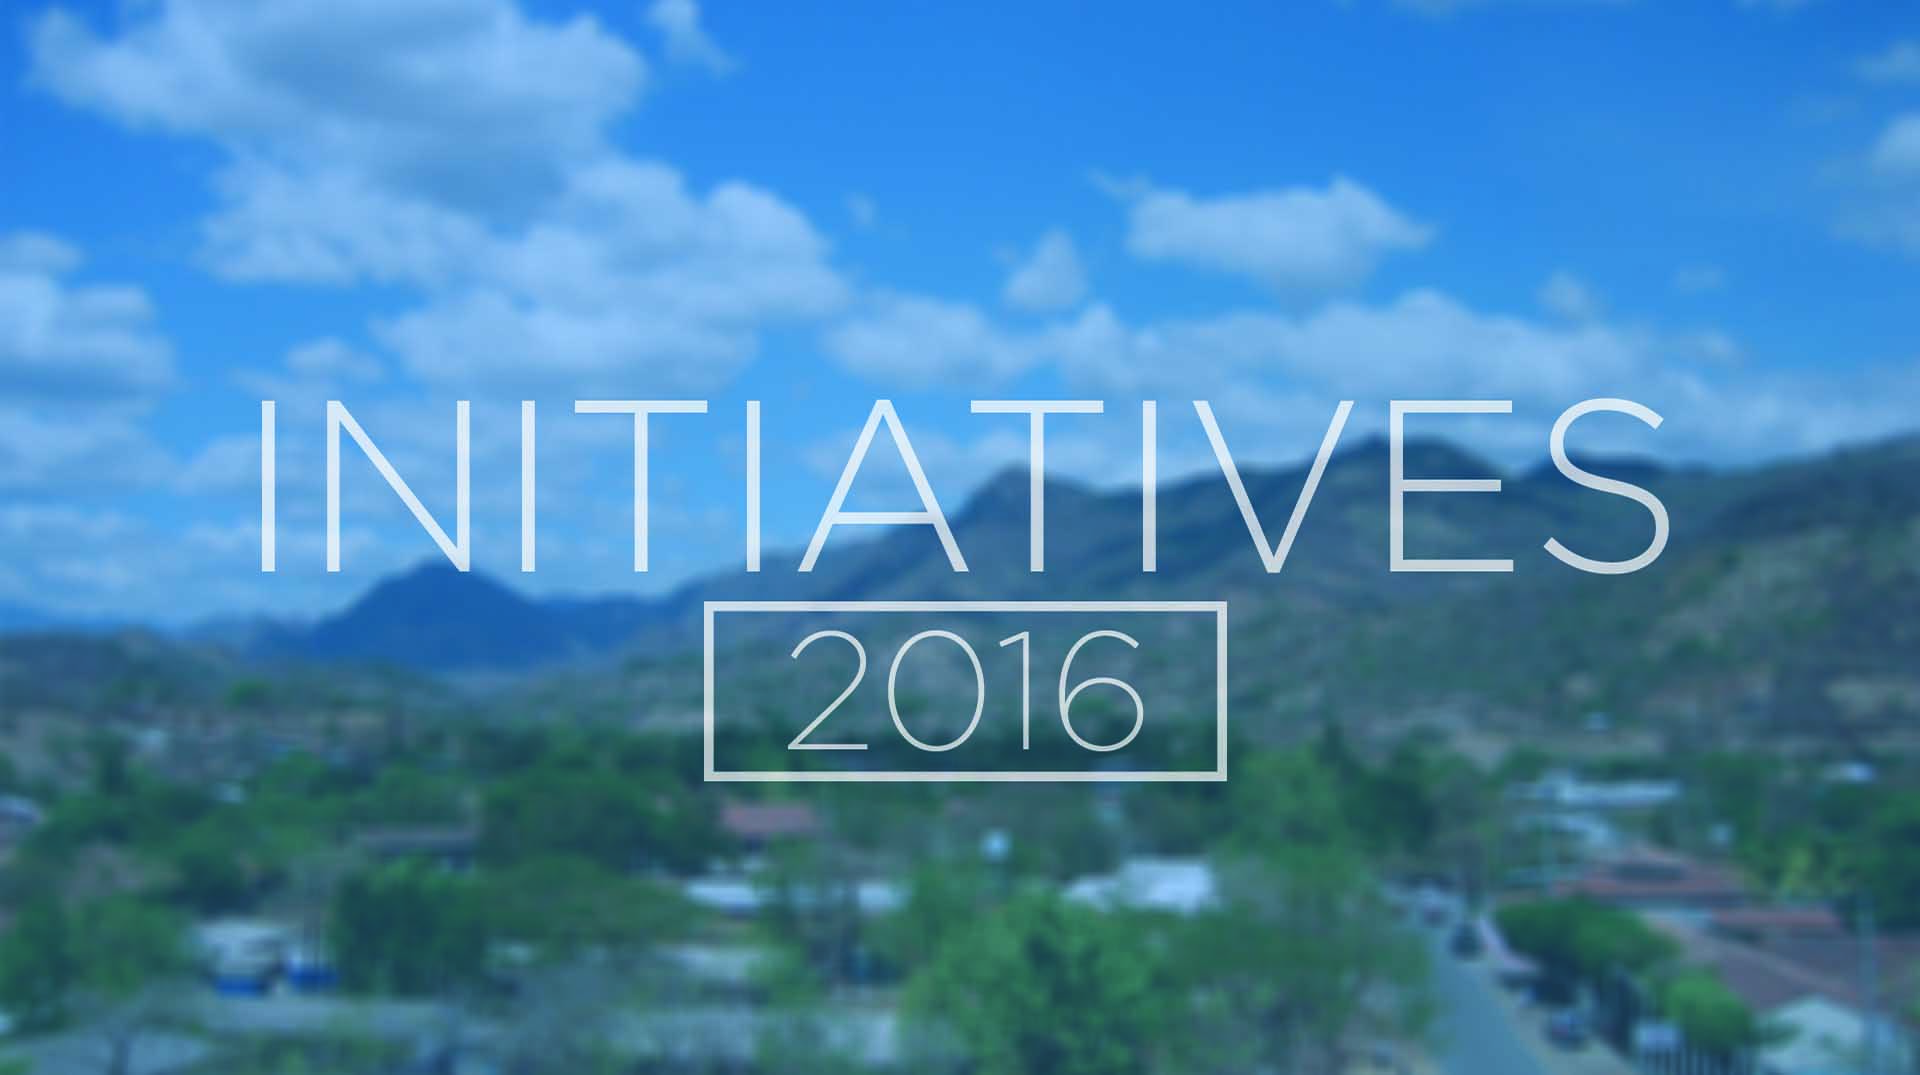 2015 GLOBAL INITIATIVES  Make a difference in Jesus' name this next year on one of our Short Term Trips. Make plans now to go on a faith adventure to make Jesus known. To learn more details and to sign-up go  HERE .         el Salvador - Compassion - June 18-24 - $2,400